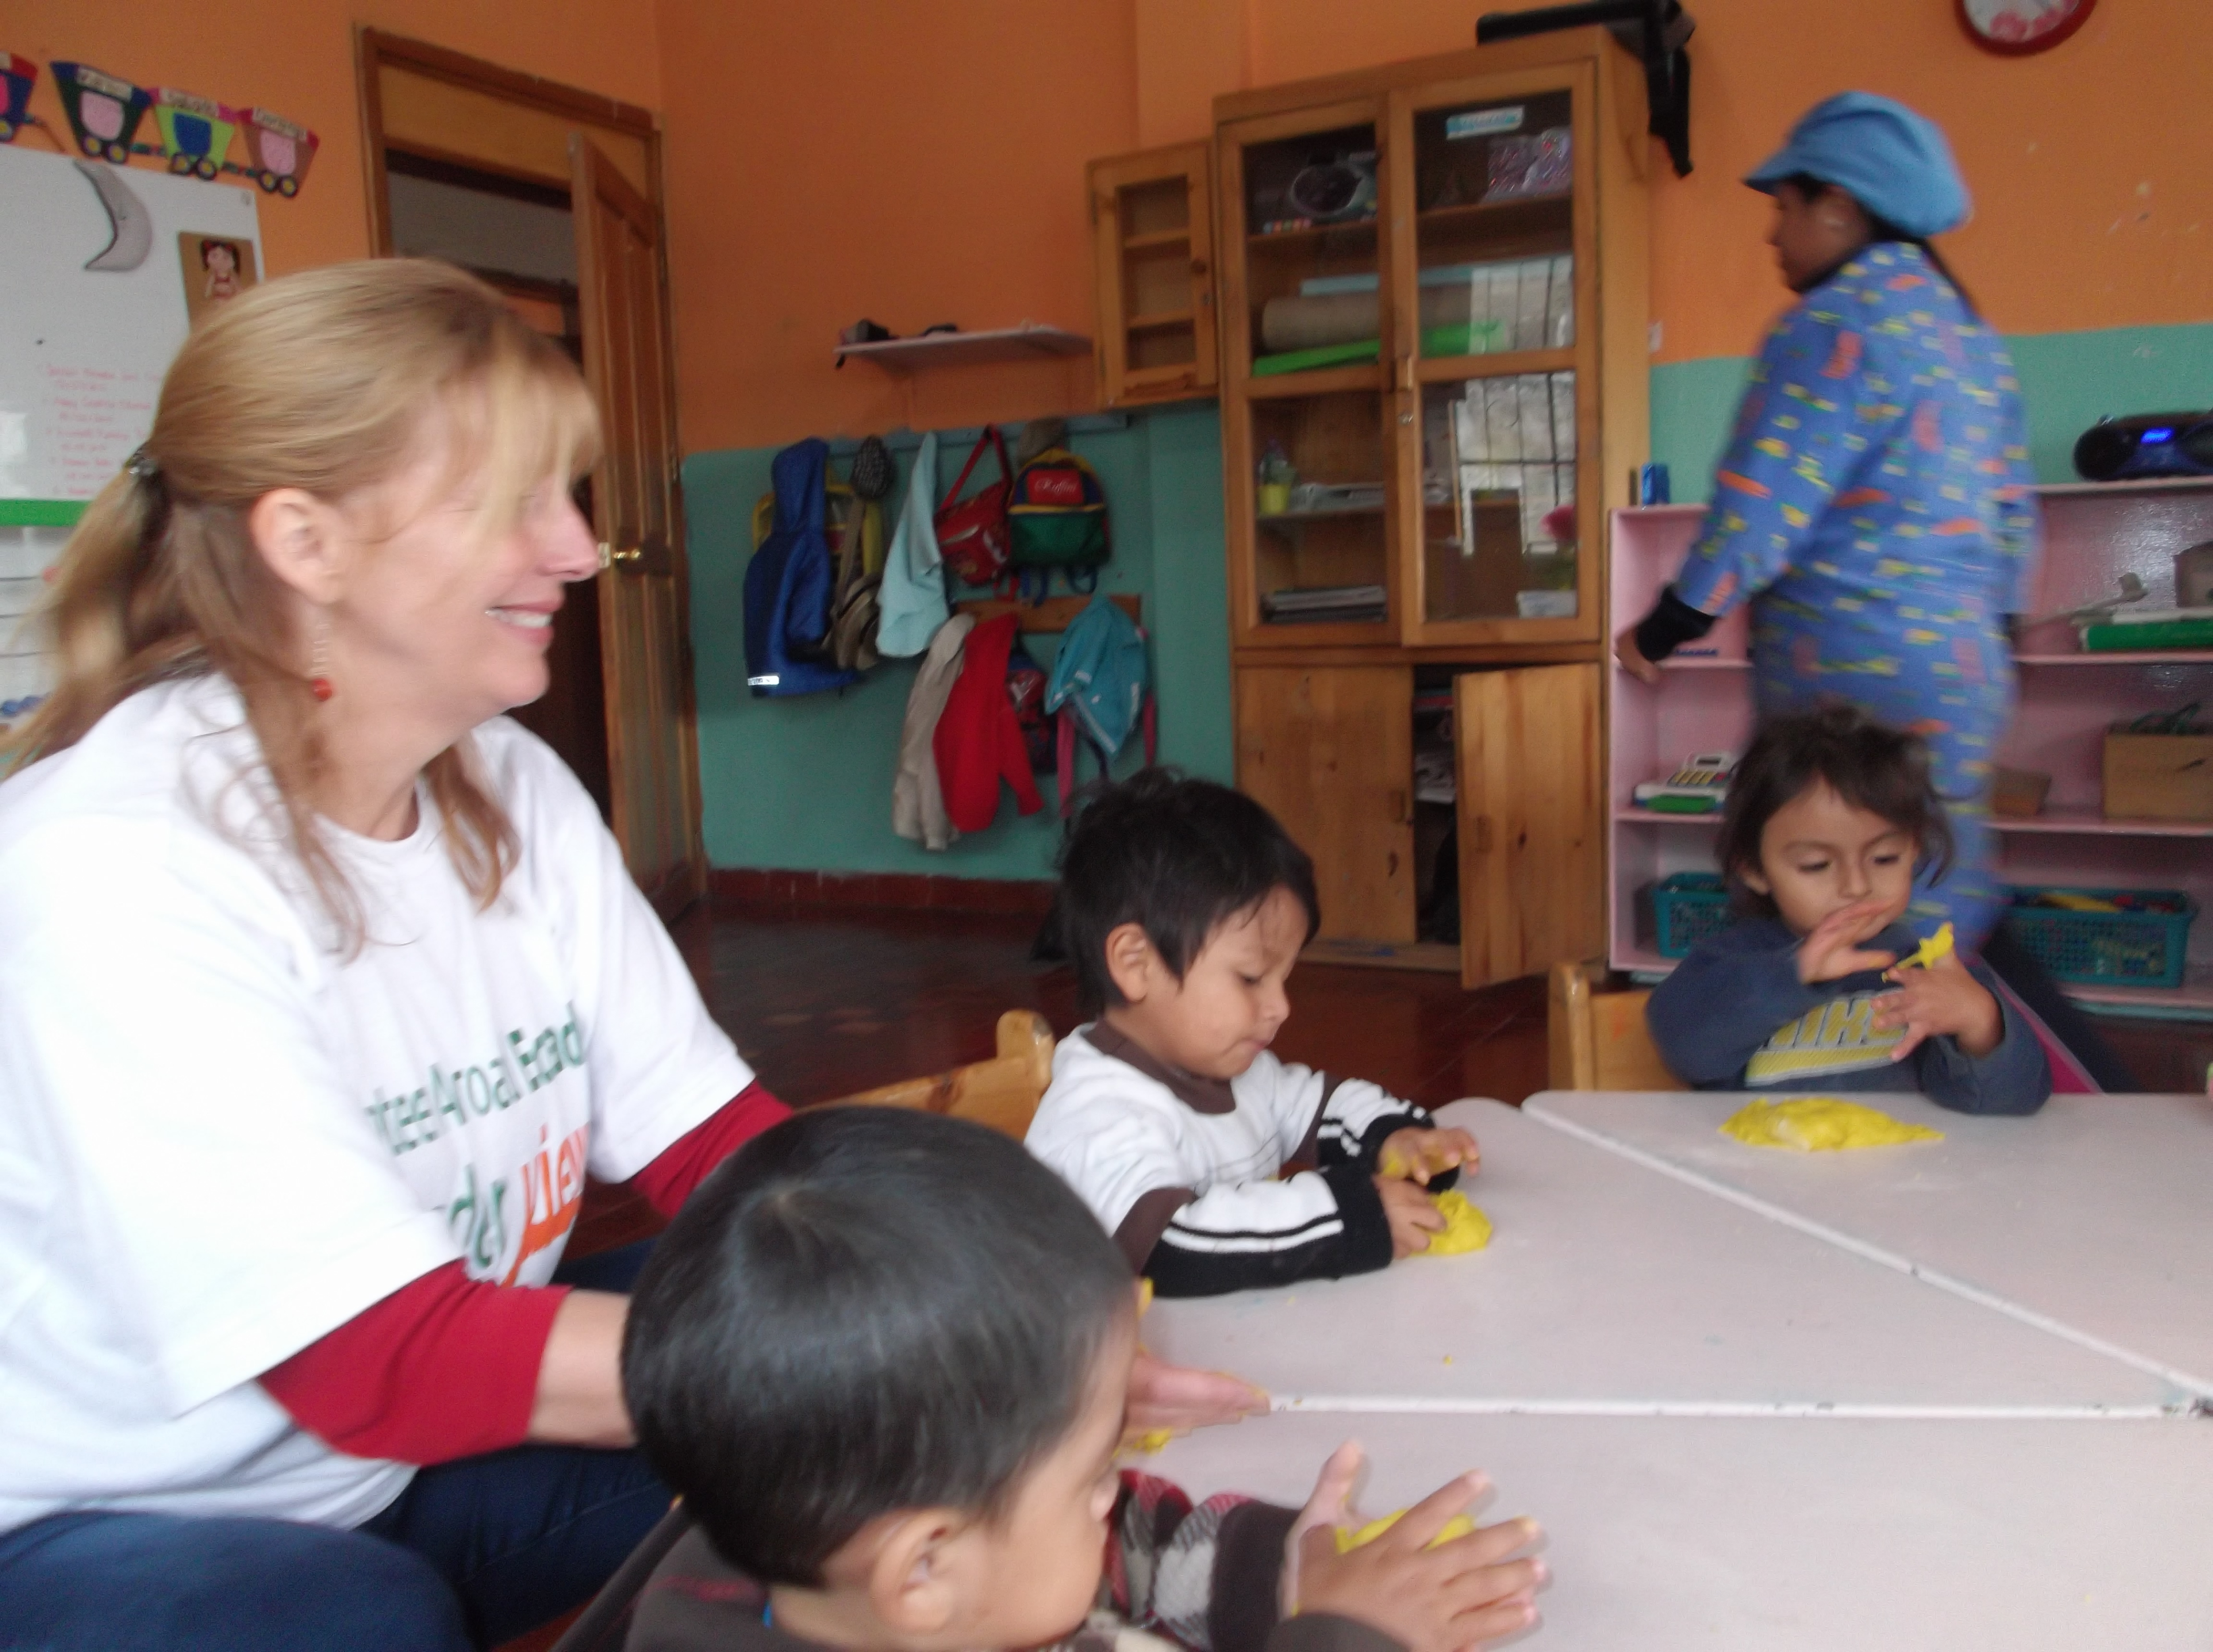 Gap Year Program - Volunteer in ECUADOR QUITO  - Orphanage, Teaching, Hippotherapy and PreMed Program with A Broader View Volunteers  3